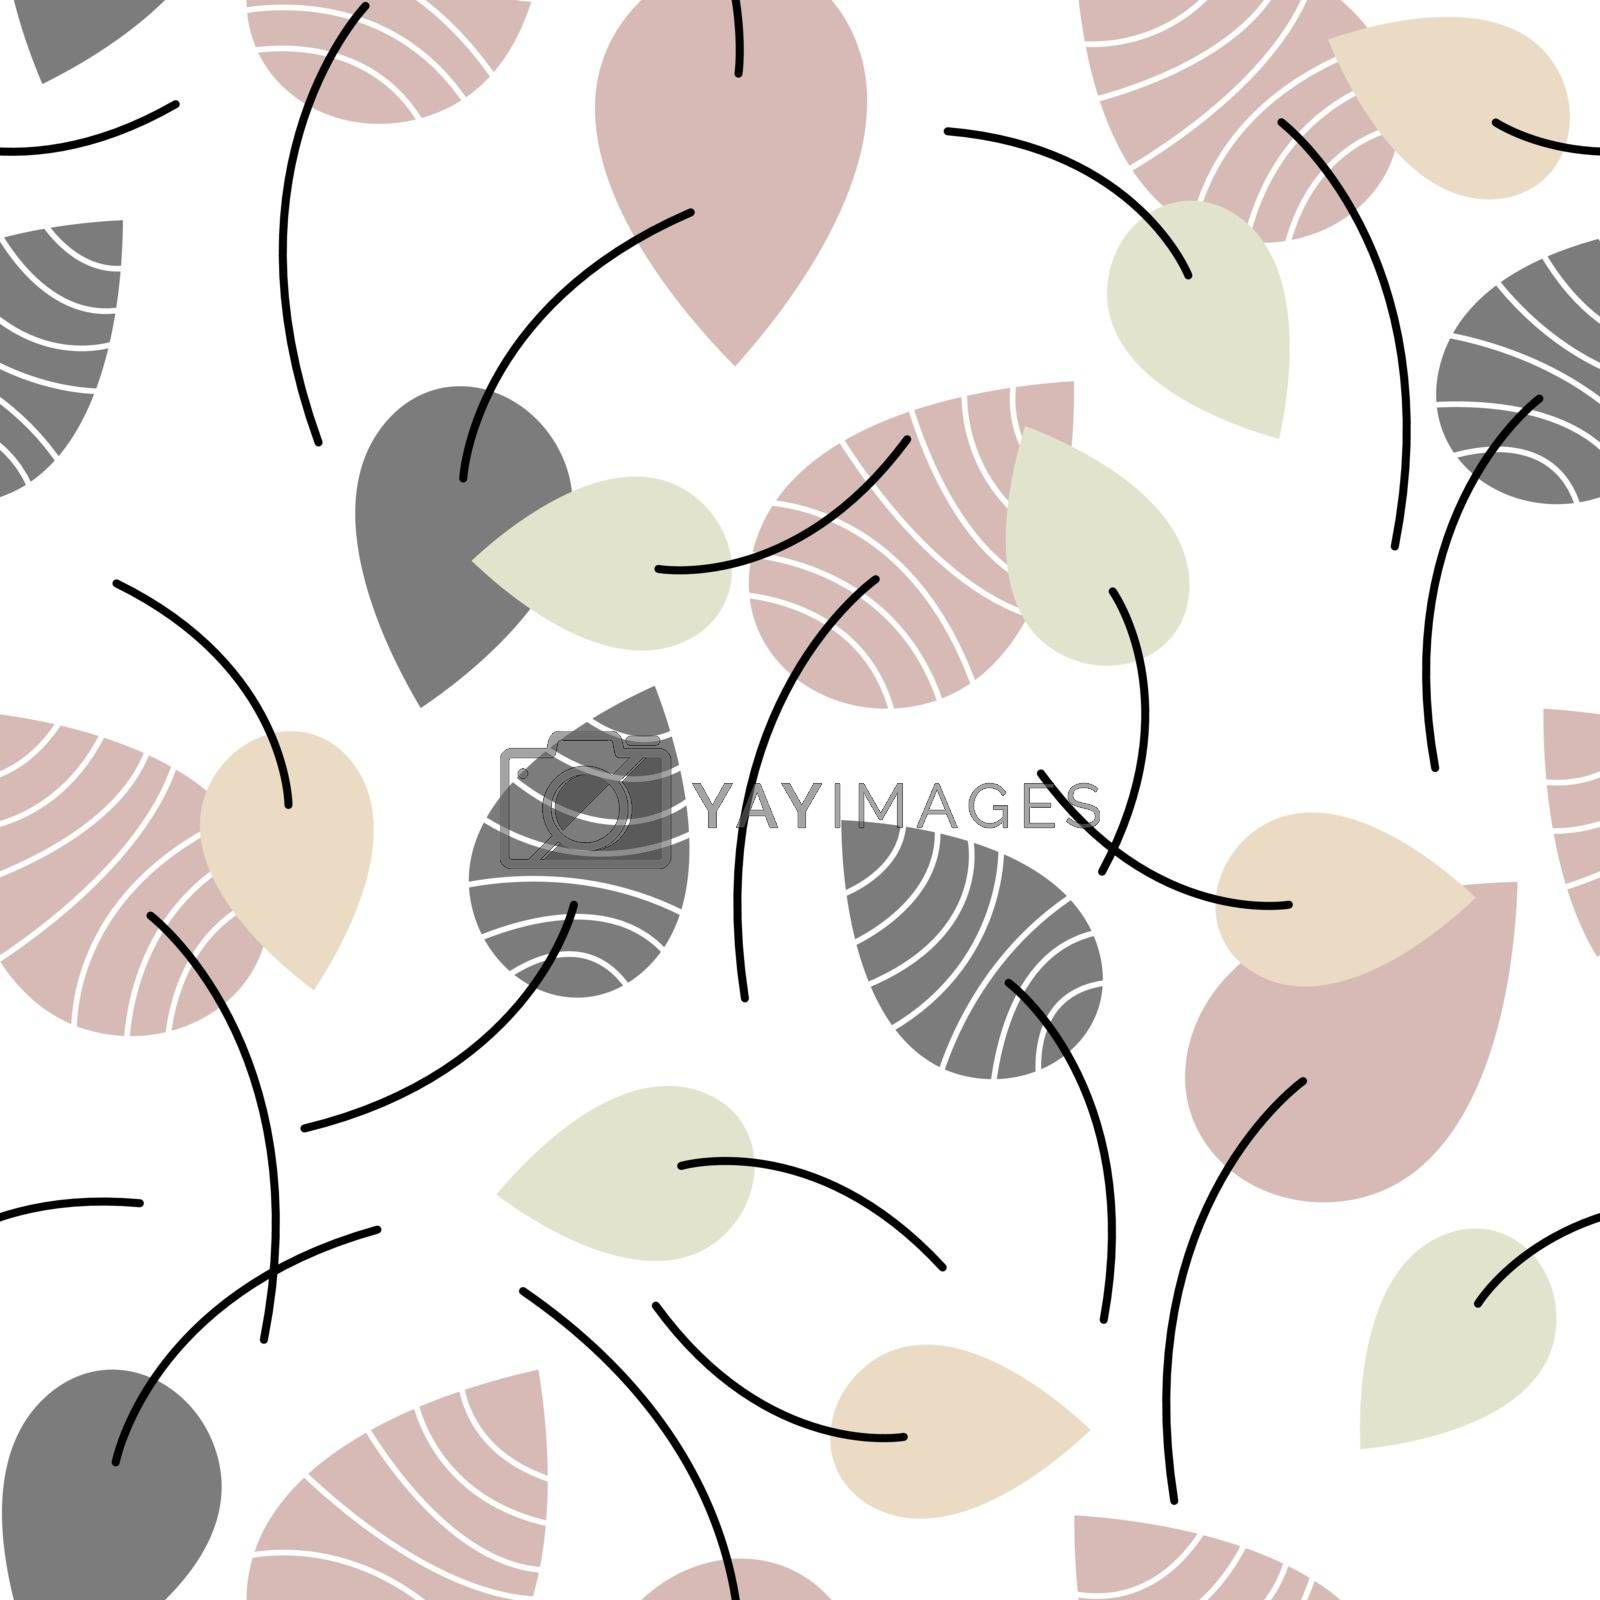 Decorative seamless pattern with grey, beige, orange and green striped flat leaves on white background. For fabric, wallpaper, wrapping paper, pattern fills, textile, web textures. Vector Eps 10.